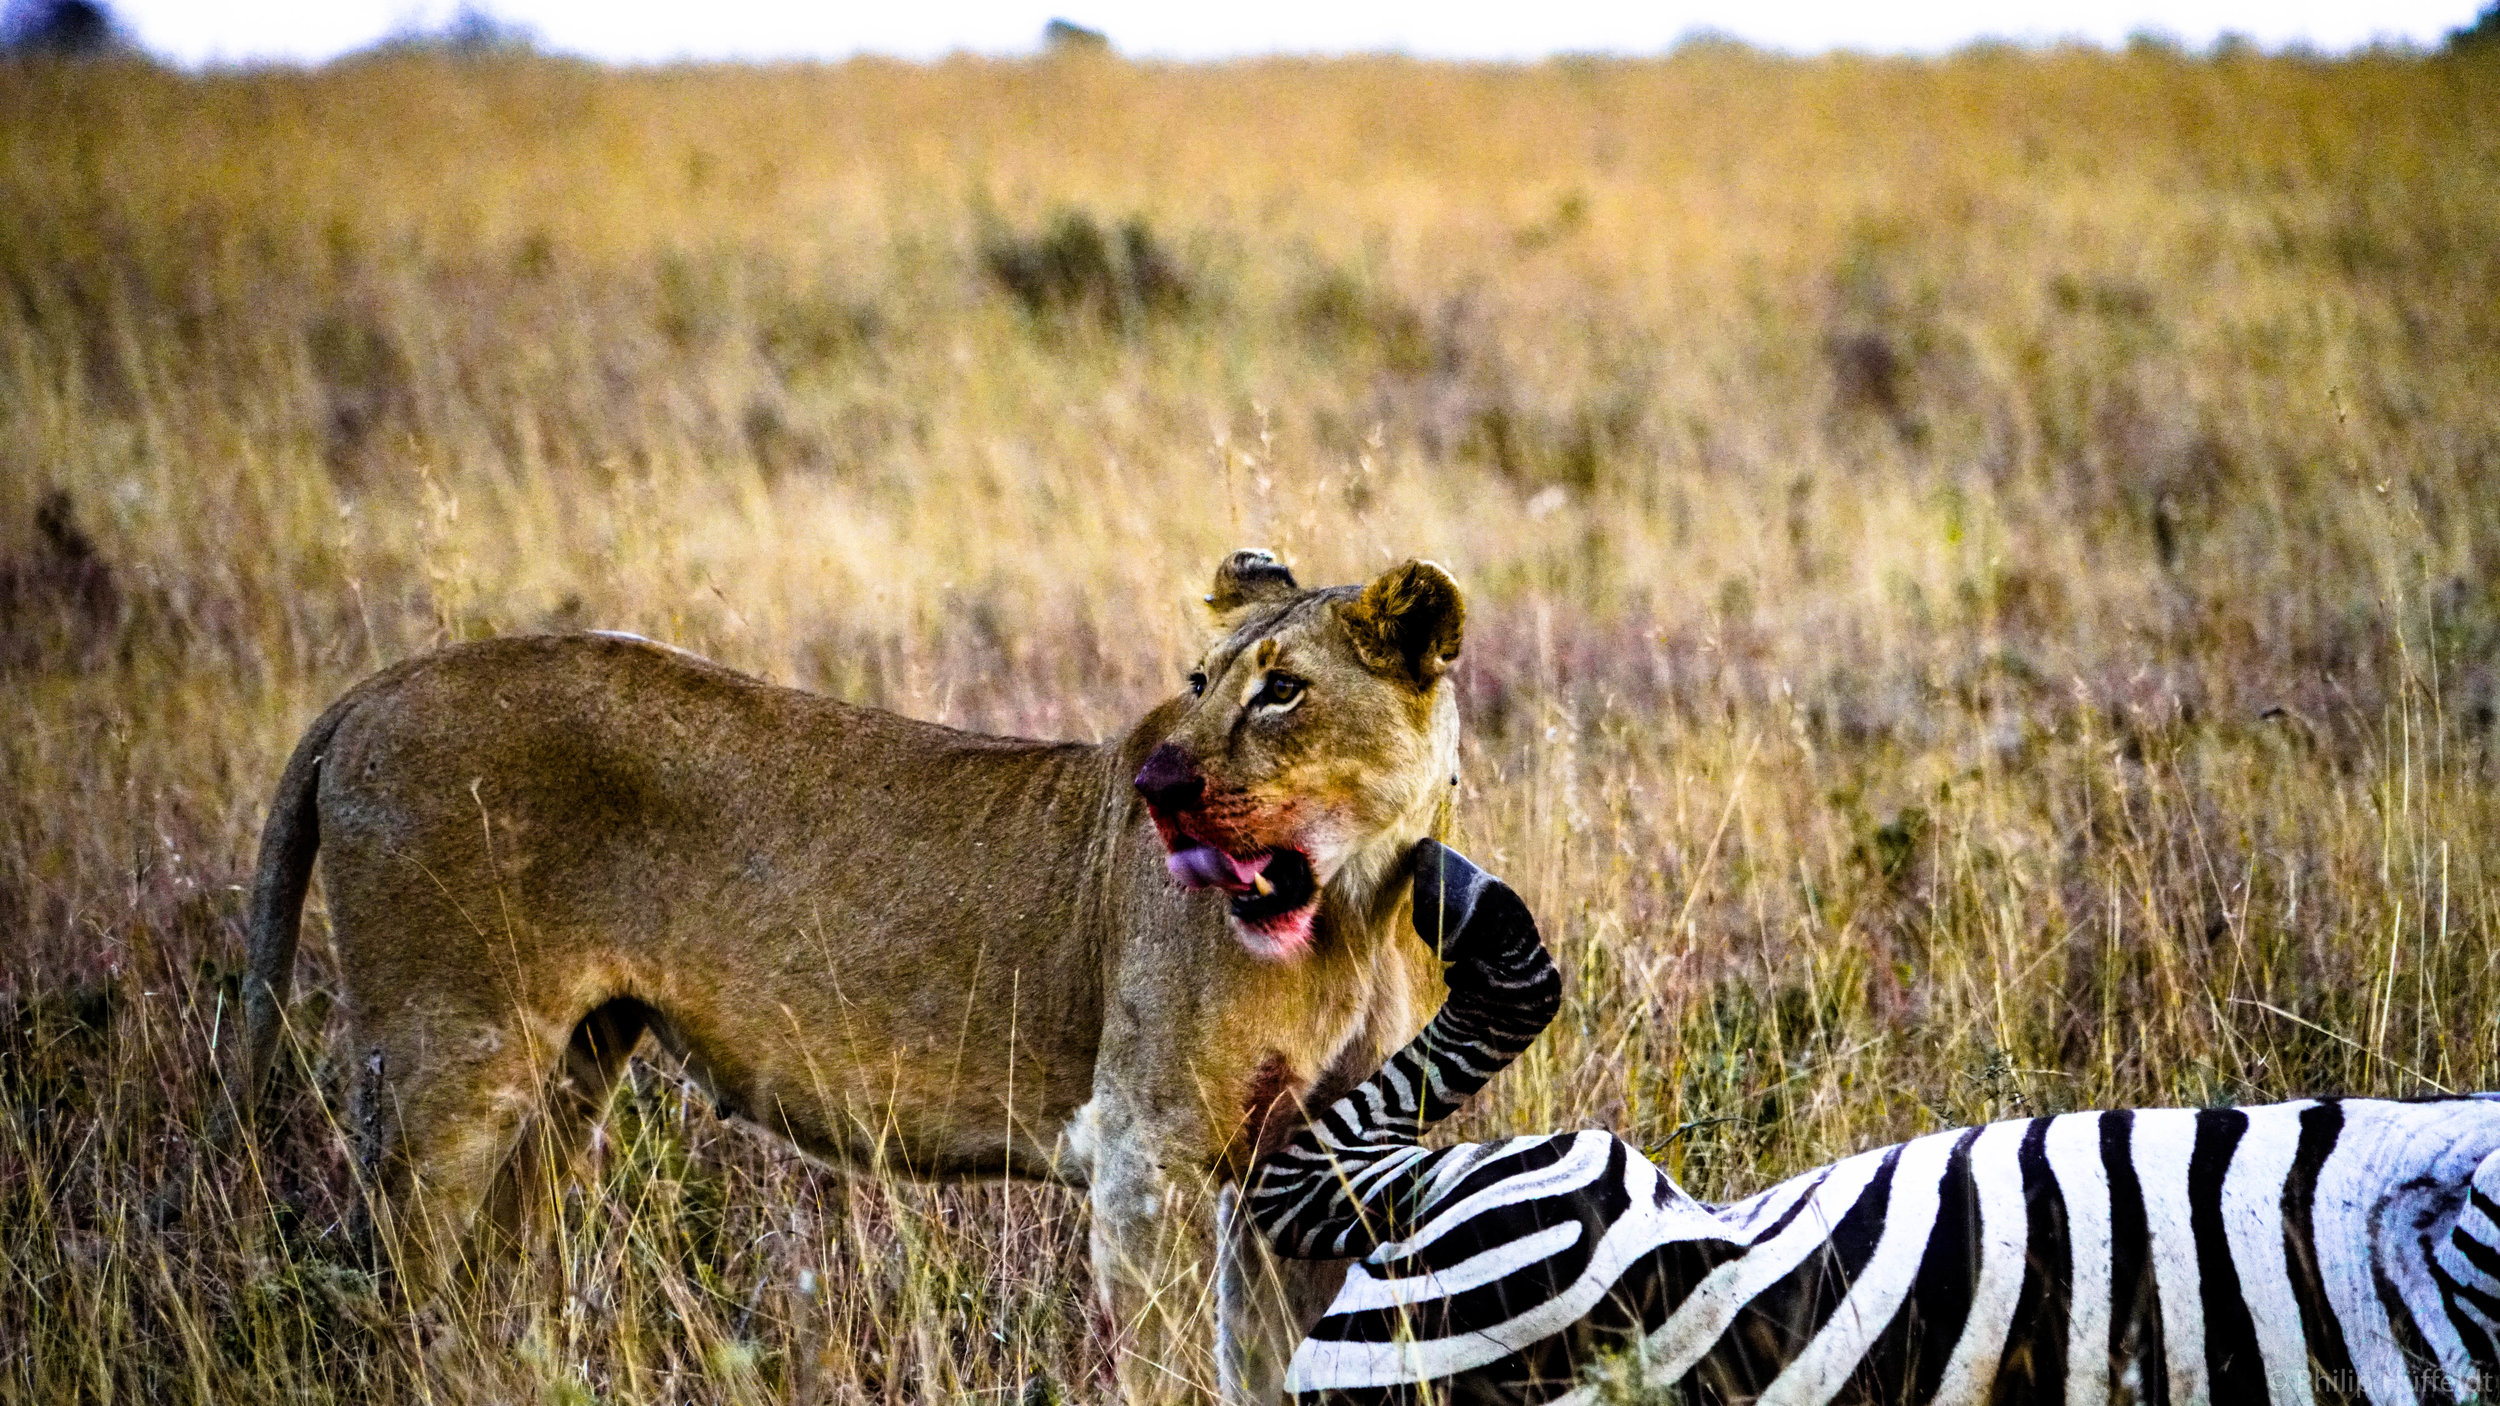 Lioness with Zebra kill Kenya.jpg